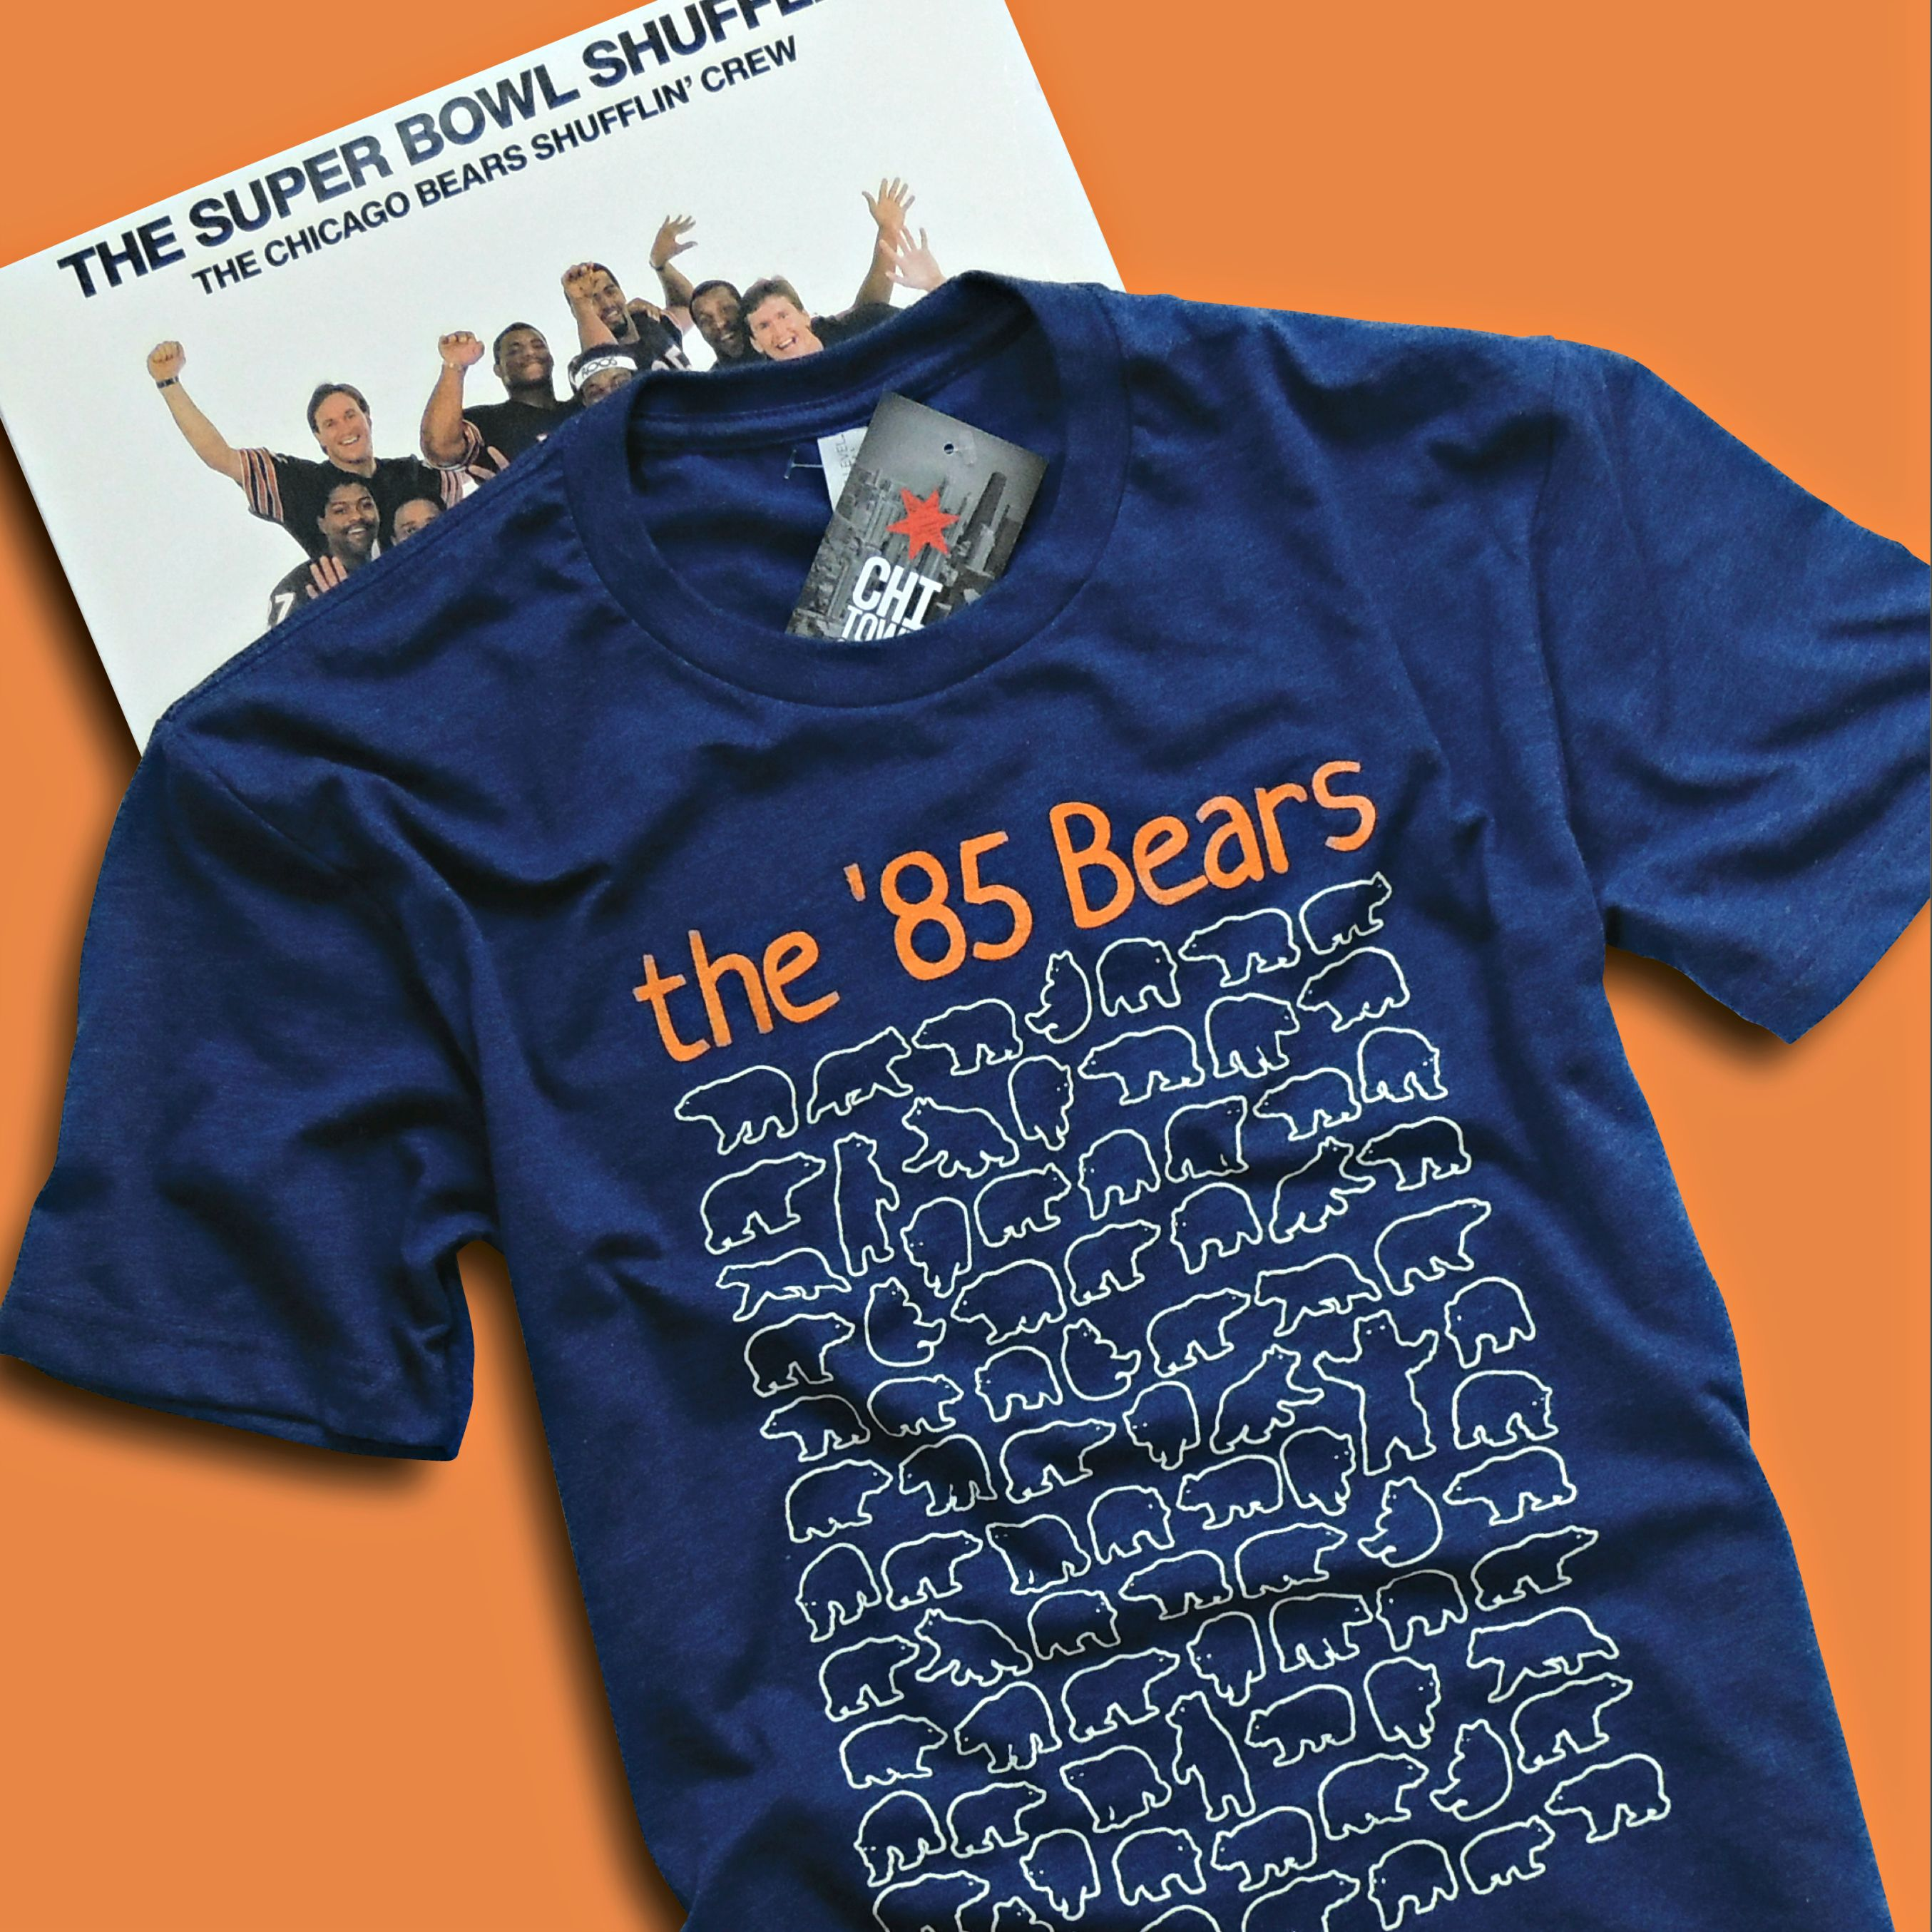 new concept 4cf1f 6fe92 Creatively designed Chicago t-shirt celebrating the Chicago Bears  season  in 1985.